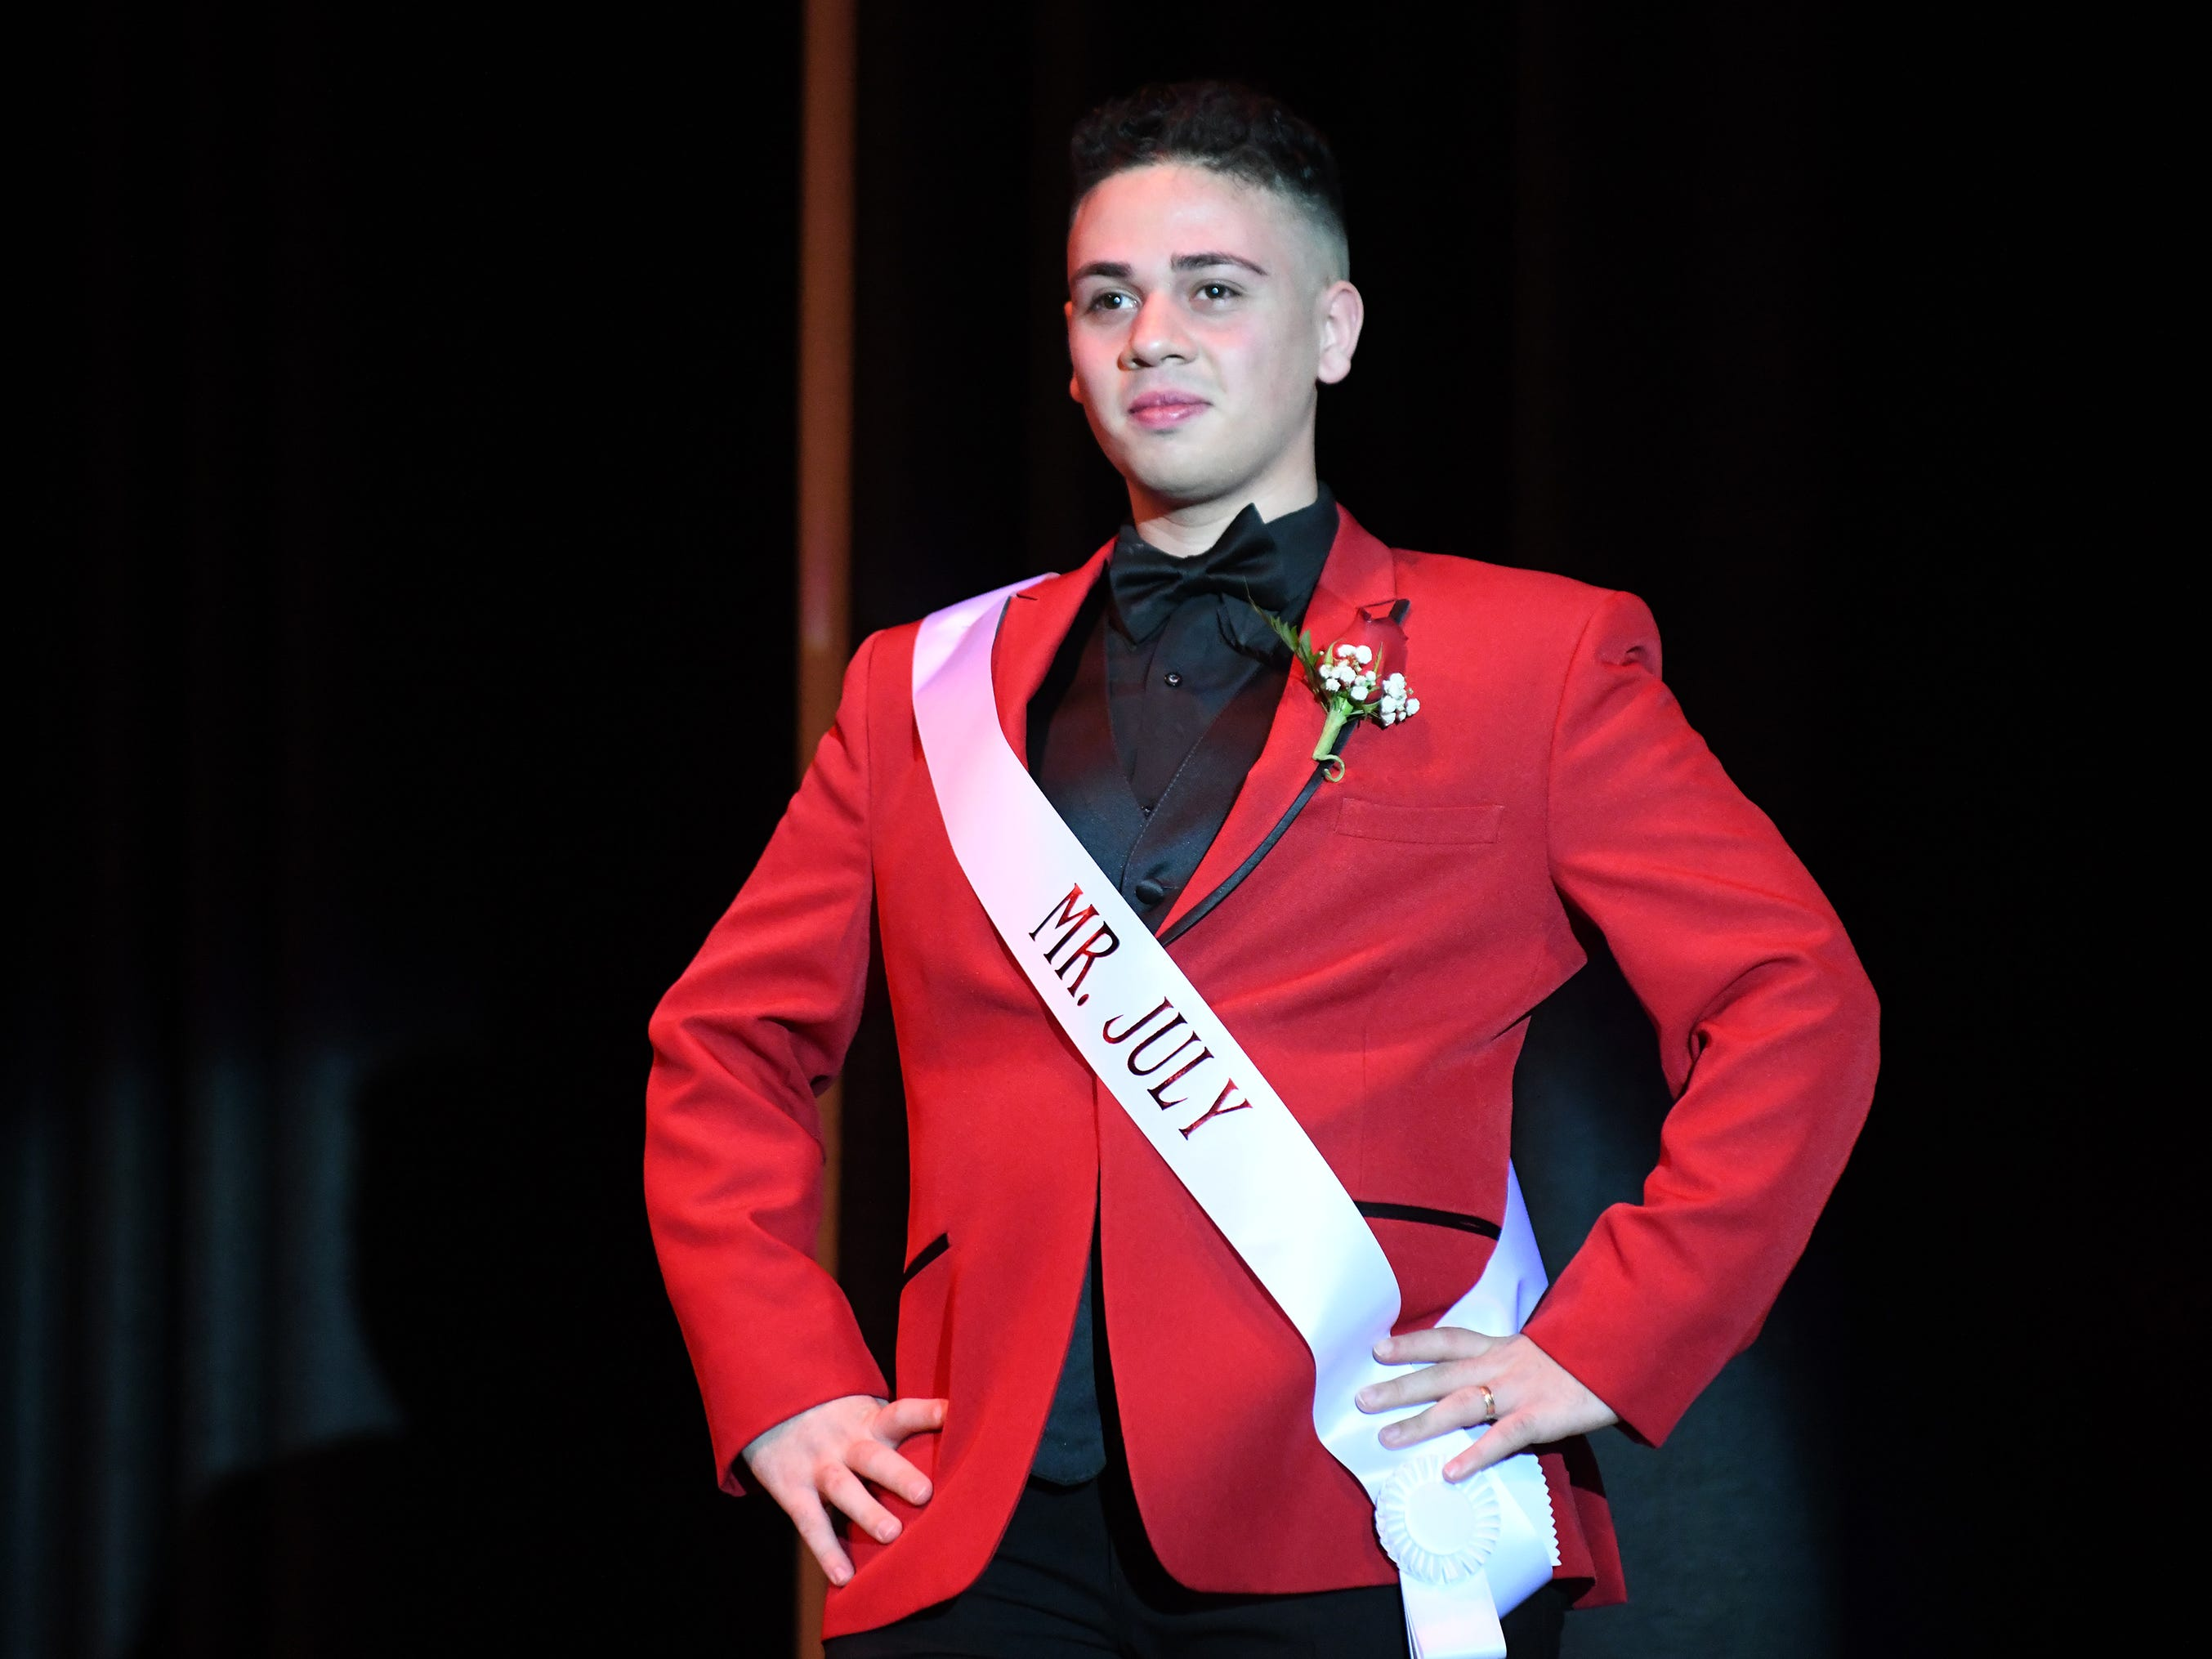 Isaac Rodriguez shows off his formal wear during Mr. Vineland 2019 at Vineland High School on Thursday, January 10.